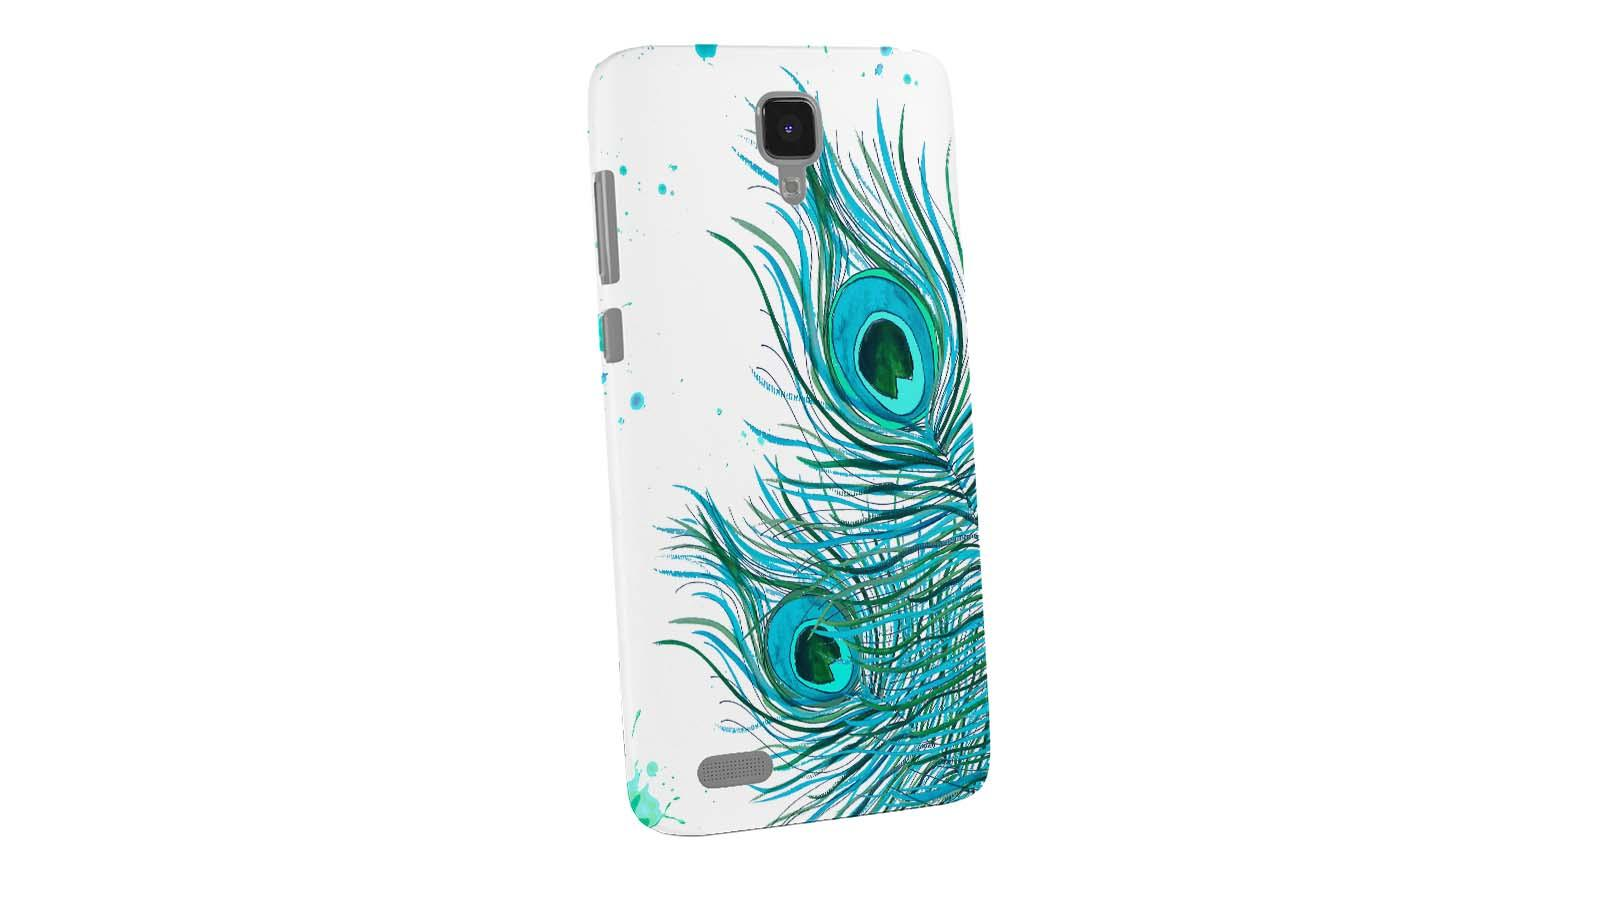 Dailyobjects Peacock Feather Mint Case For Xiaomi Redmi Note 4g